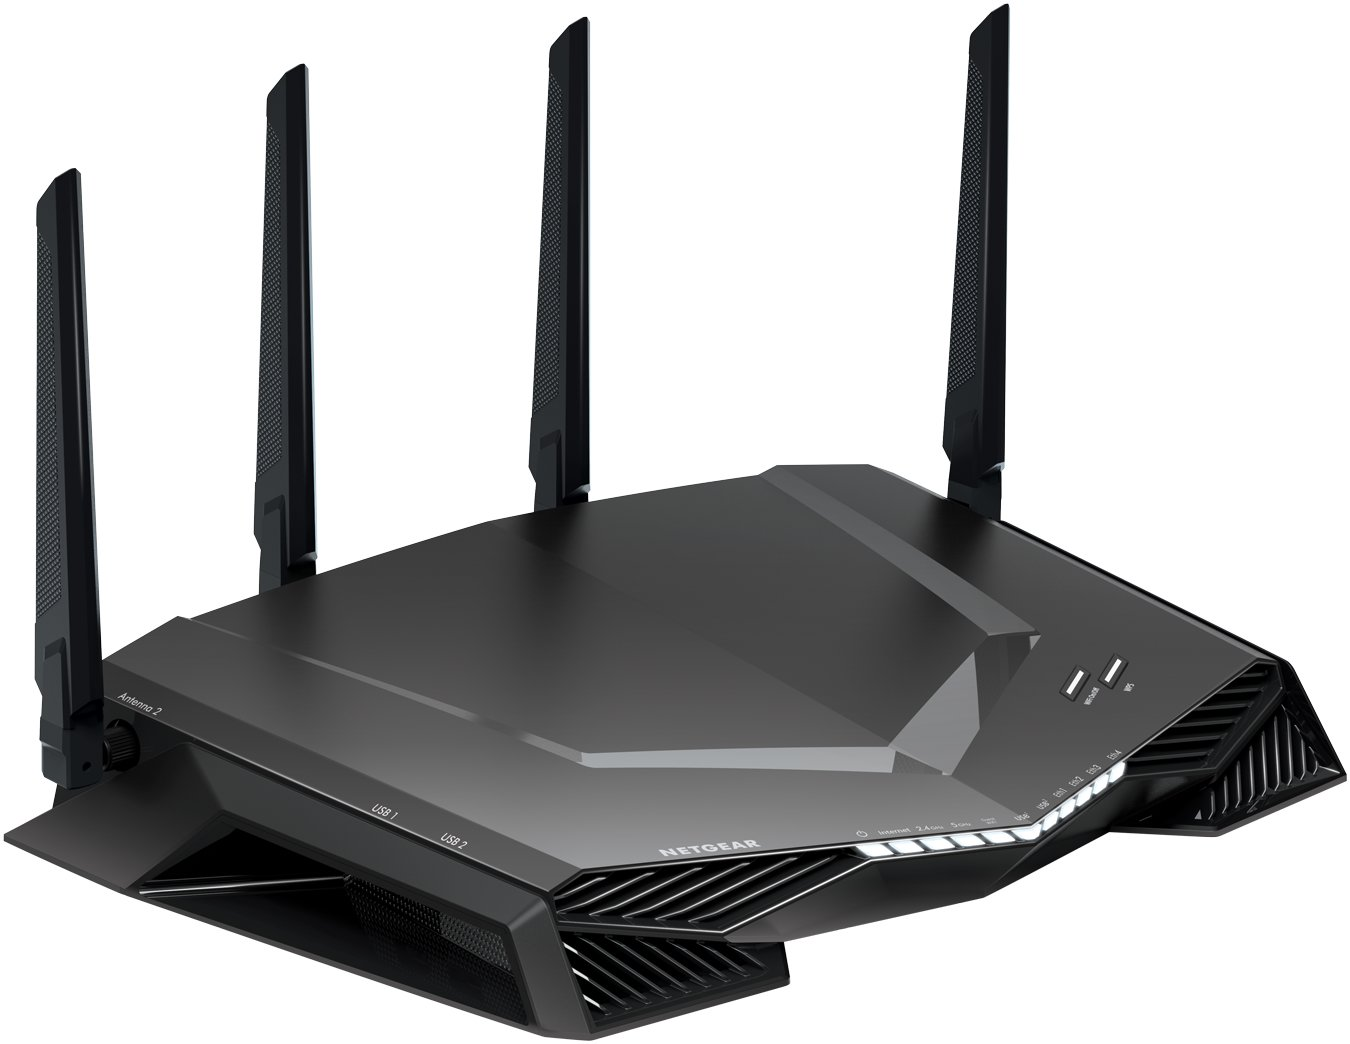 nighthawk pro gaming xr700 netgear router mit 10 gbit lan. Black Bedroom Furniture Sets. Home Design Ideas